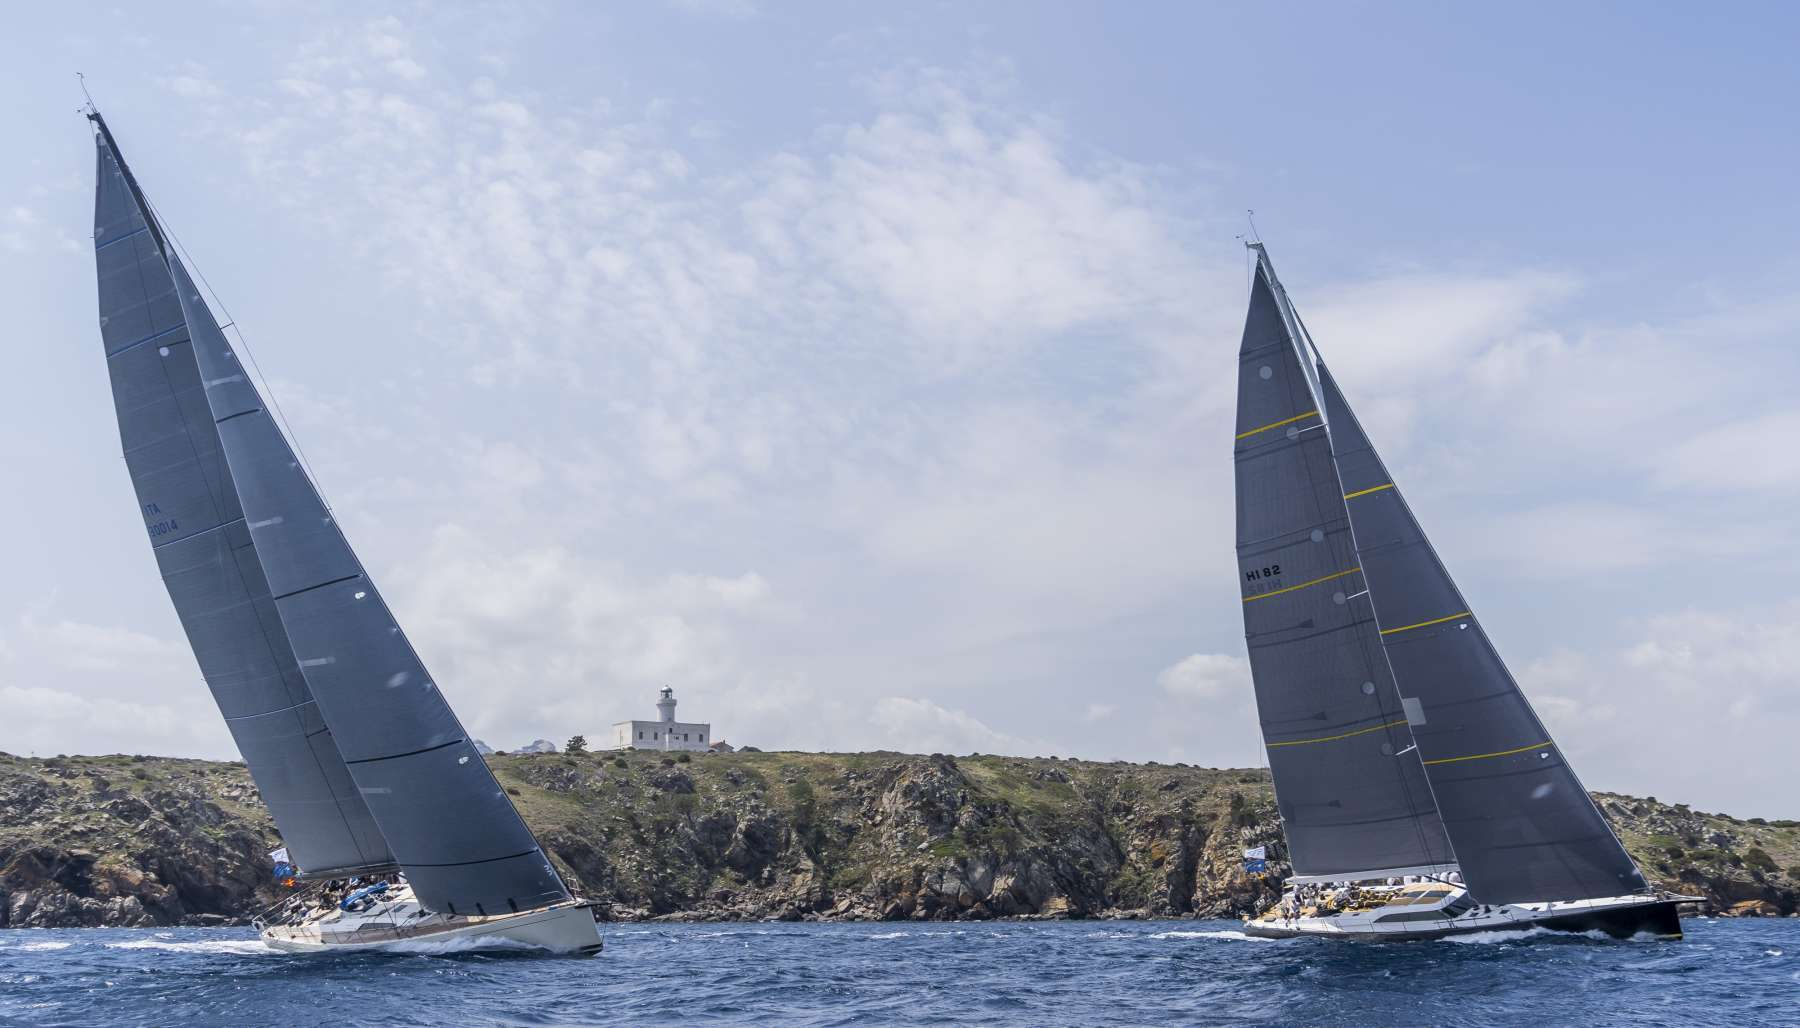 Loro Piana Superyacht Regatta - Grande Orazio leads at Southern Wind Trophy - NEWS - Yacht Club Costa Smeralda